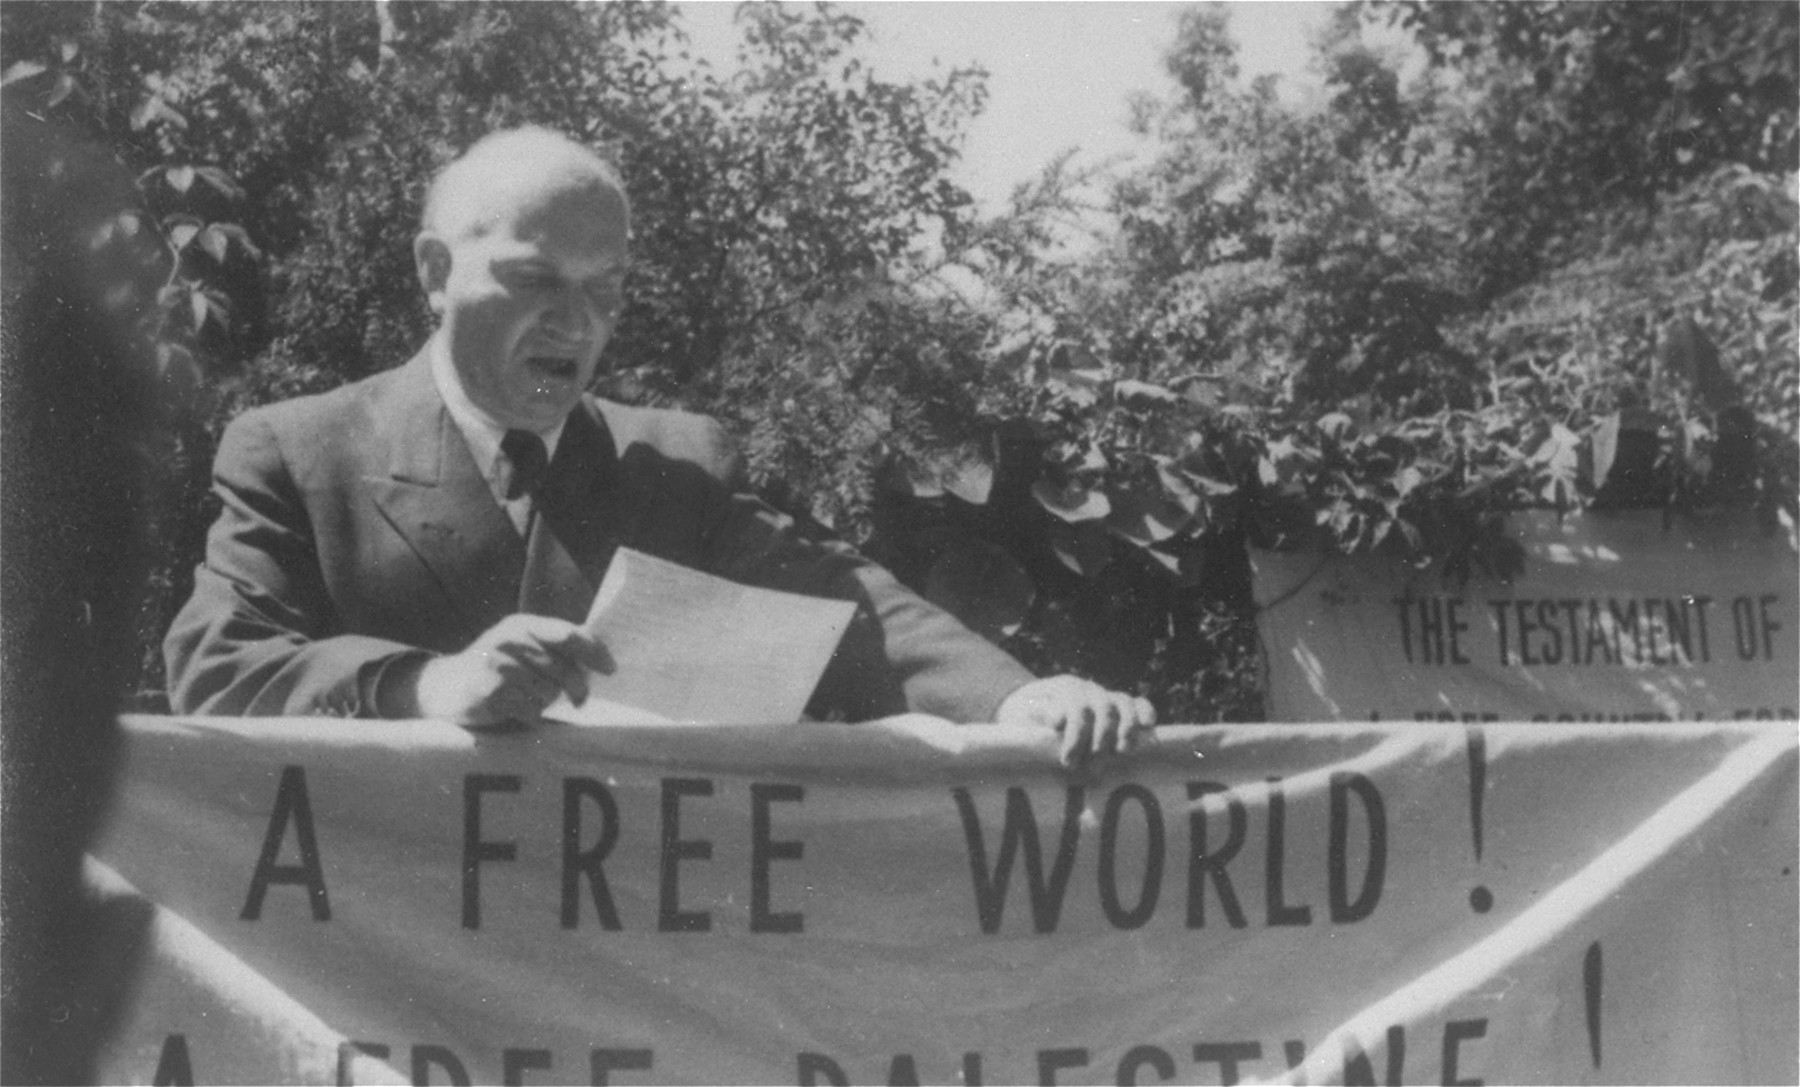 David Treger delivers an address at a demonstration in the Foehrenwald displaced persons camp to protest against the capture and return of the Exodus 1947 immigration ship.